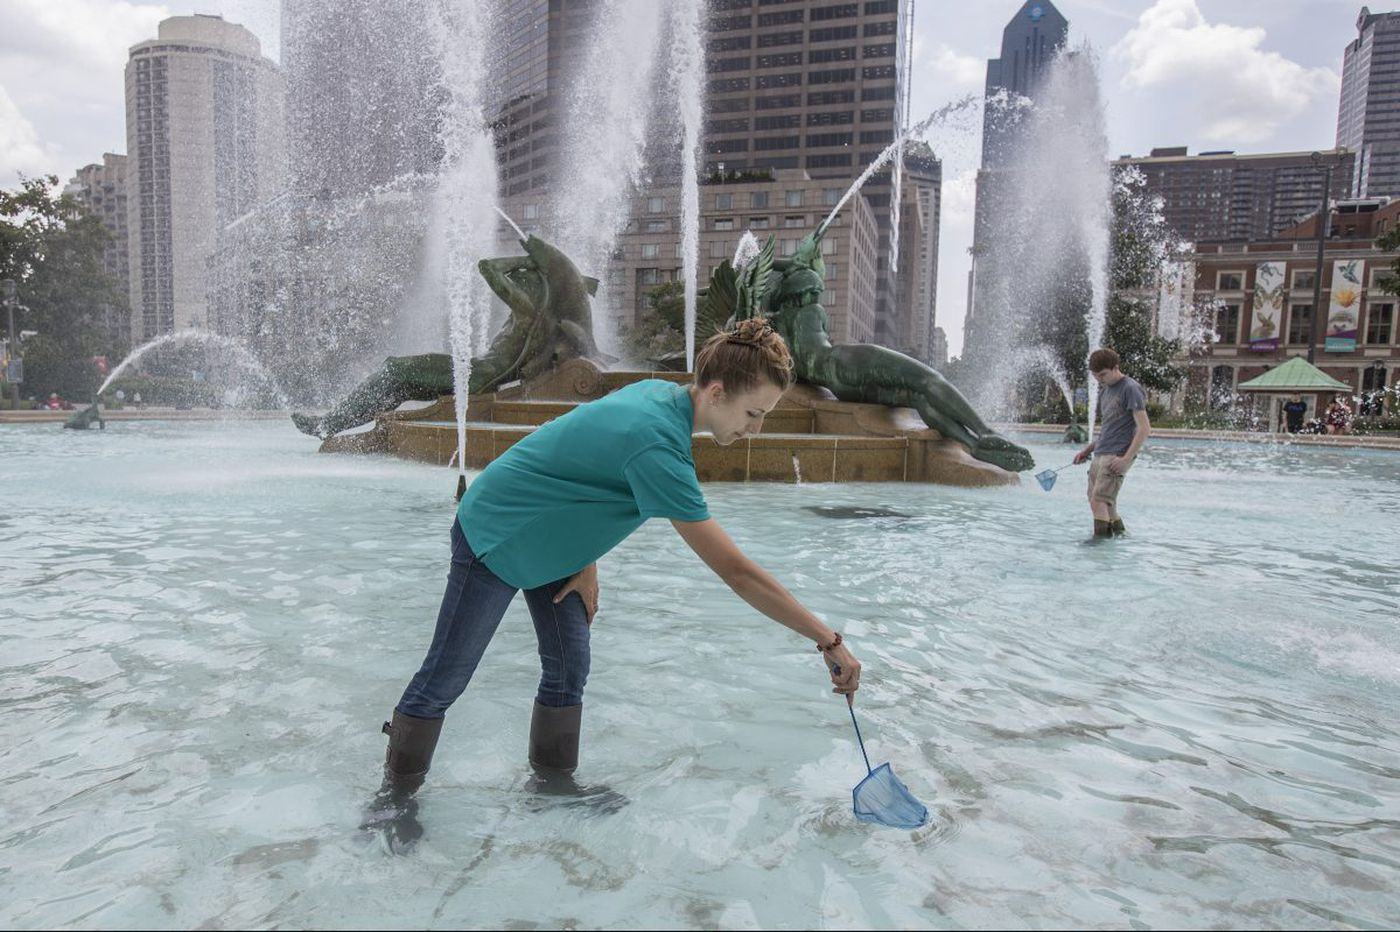 A scientist is using the bugs in Swann Fountain to study Philadelphia's climate